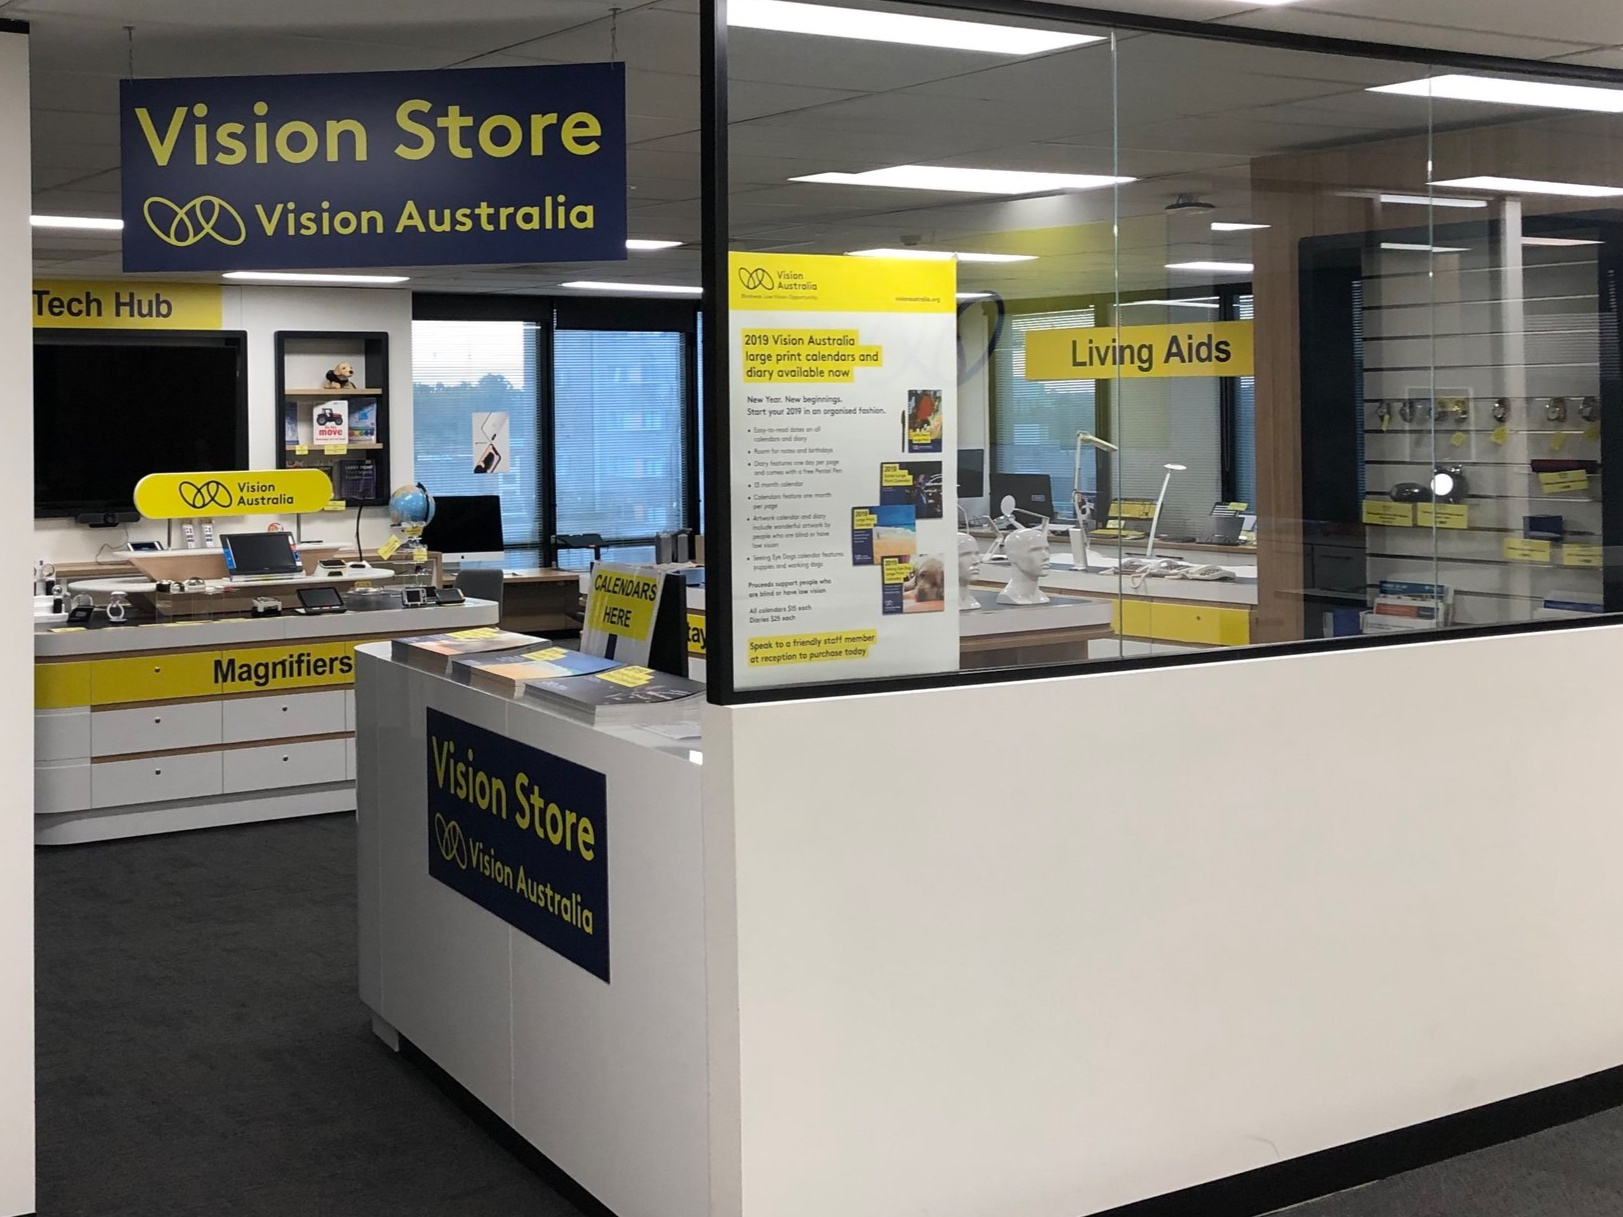 The Vision Store at Vision Australia Parramatta. Now totally findable thanks to BindiMaps and Vision Australia.